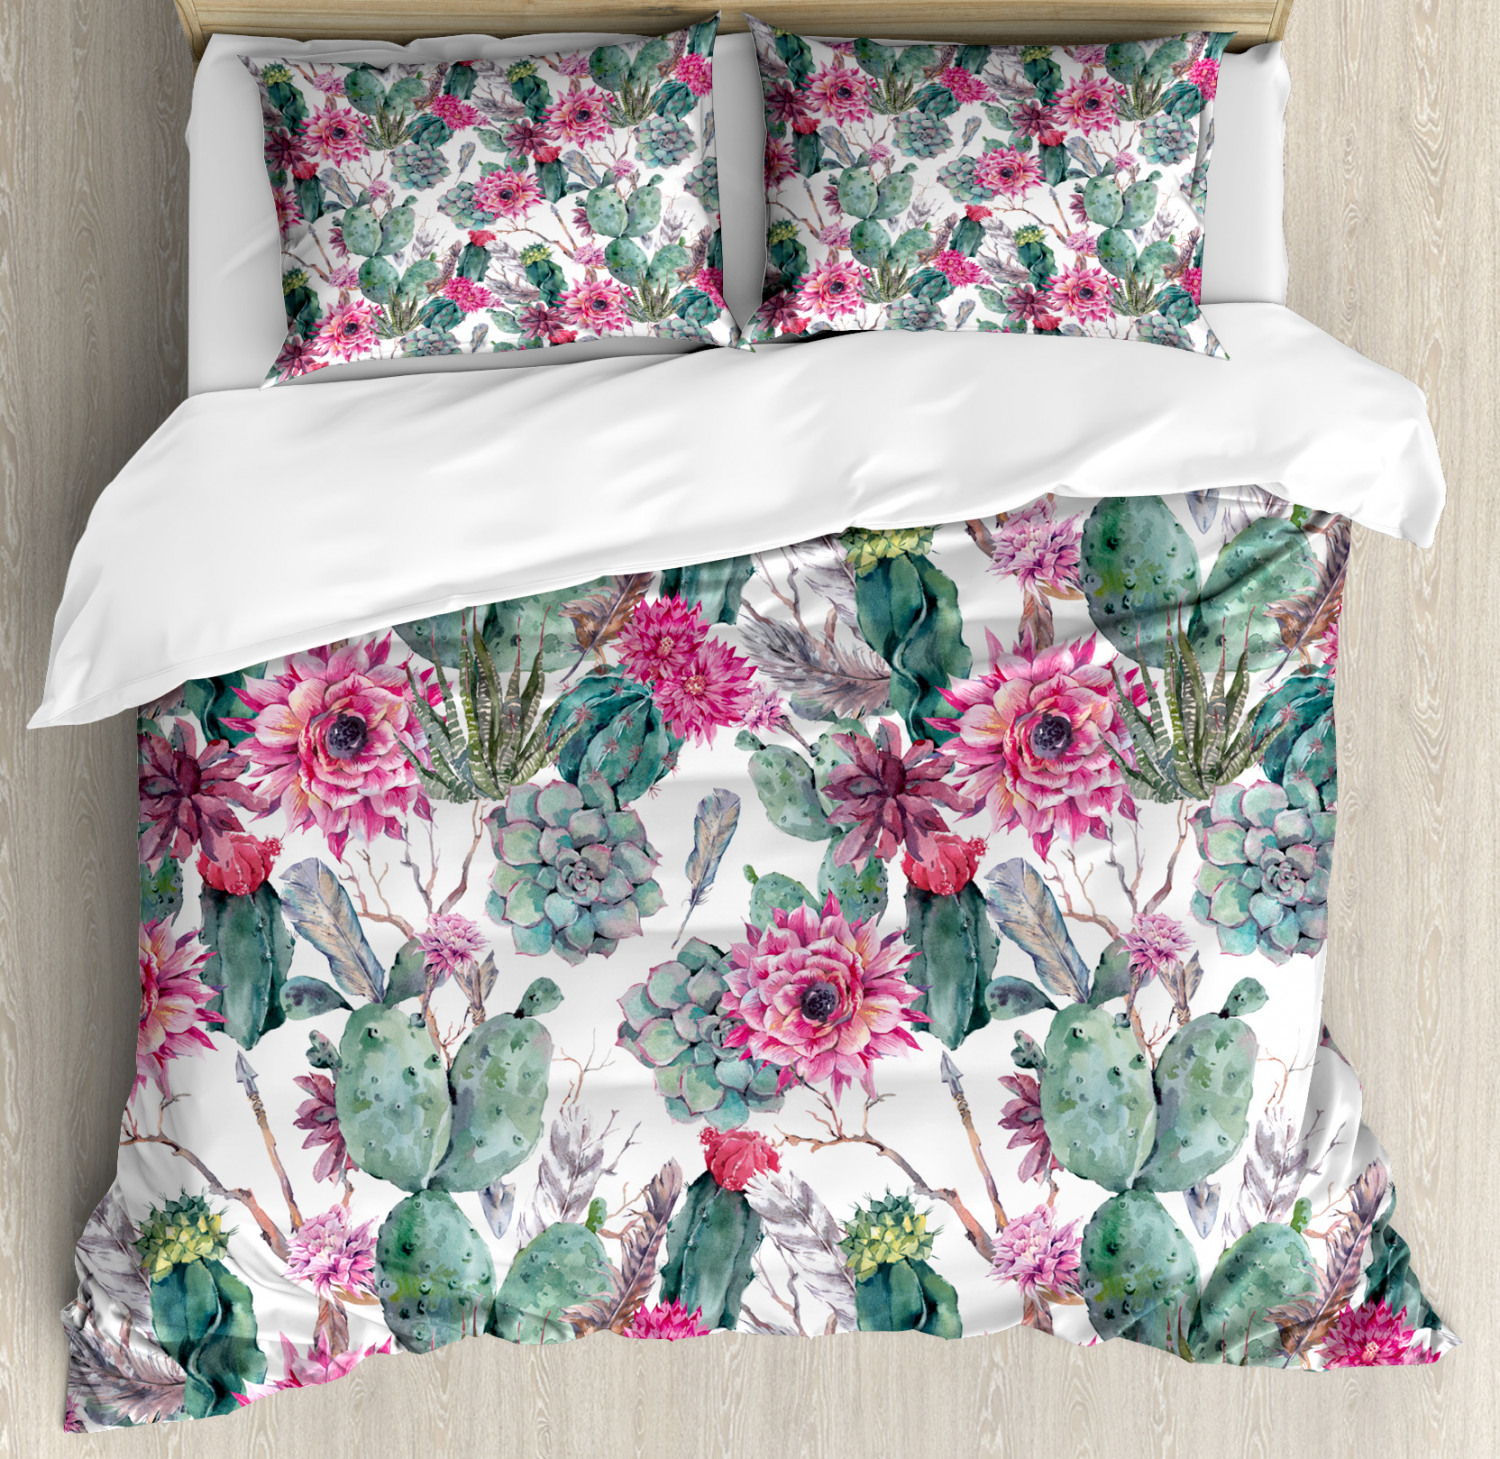 Cactus Duvet Cover Set with Pillow Shams Spring Blooms Boho Style Print